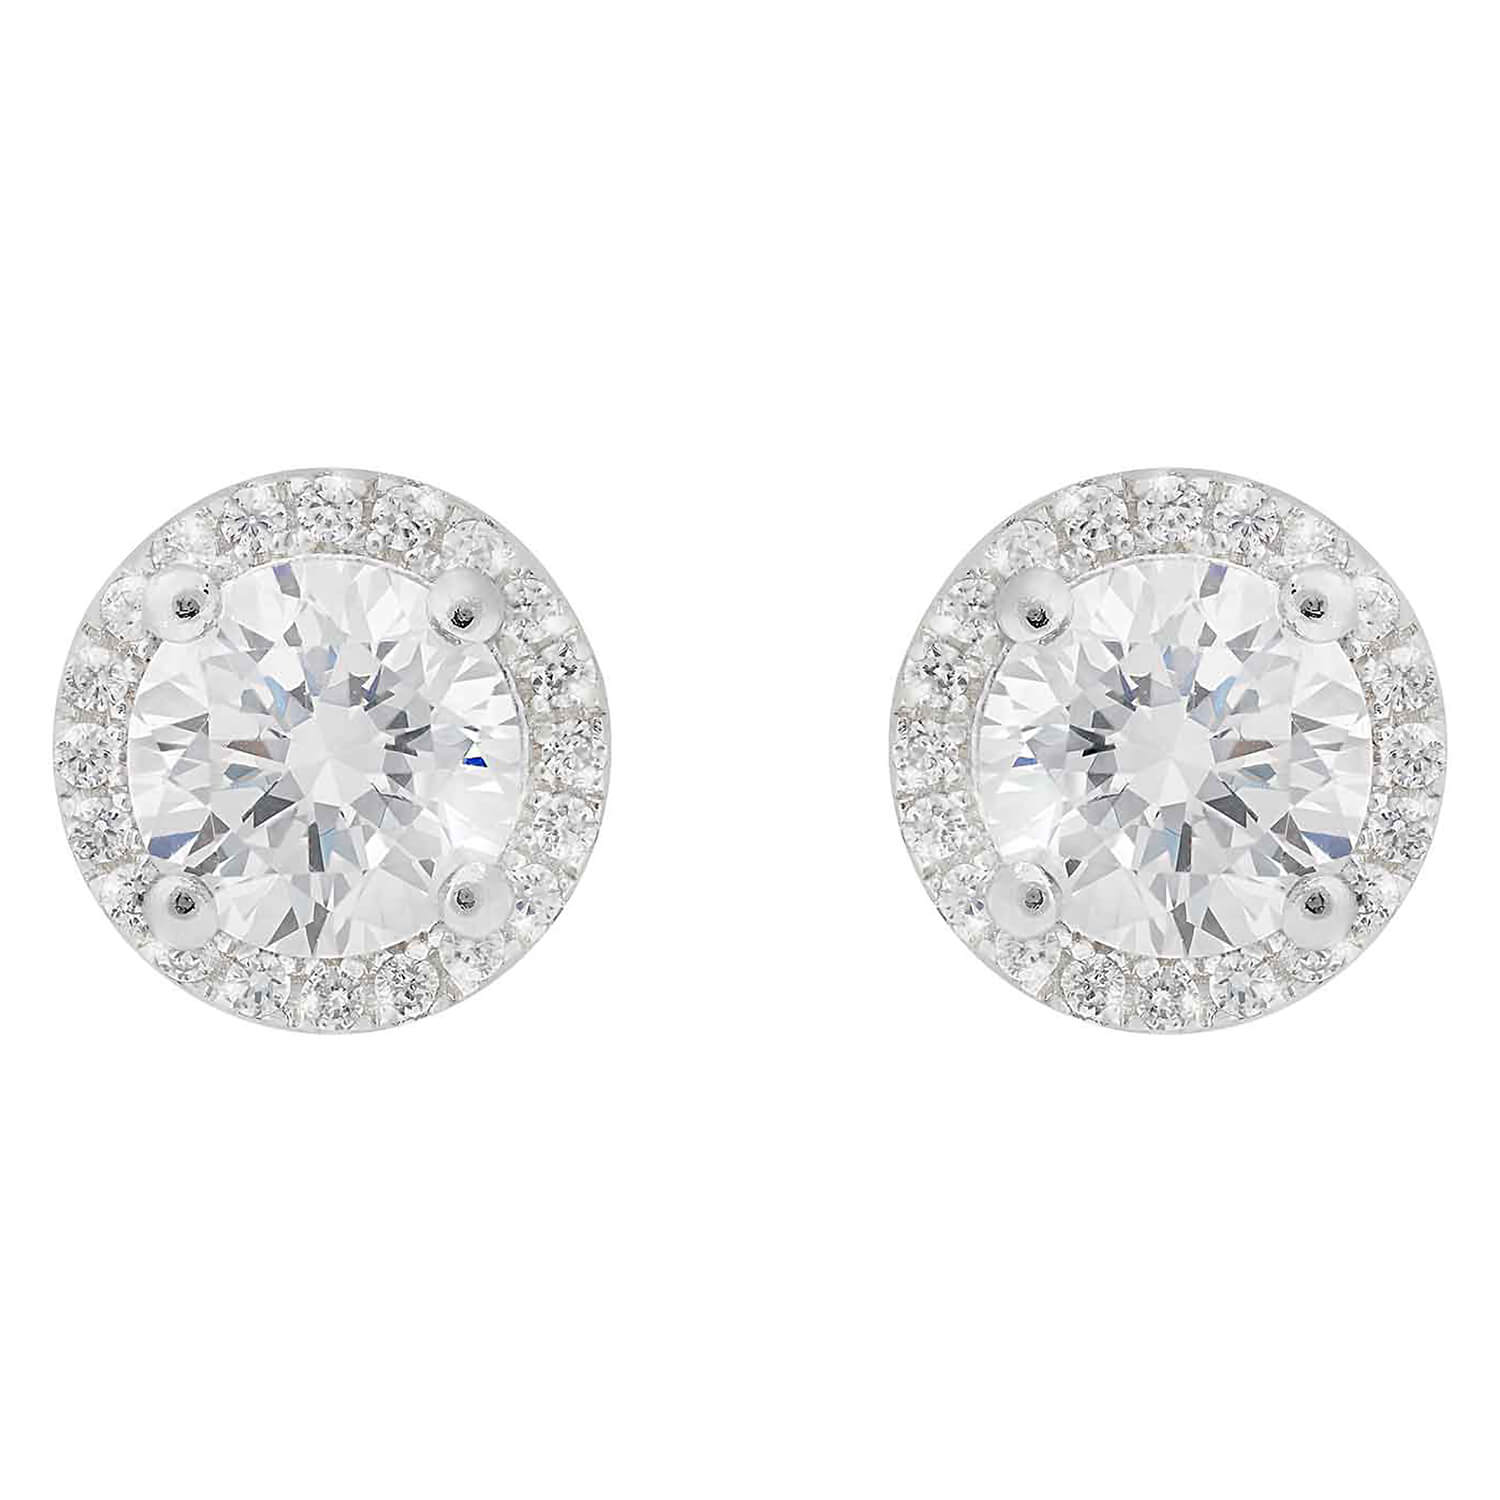 Silver cubic zirconia halo cluster stud earrings